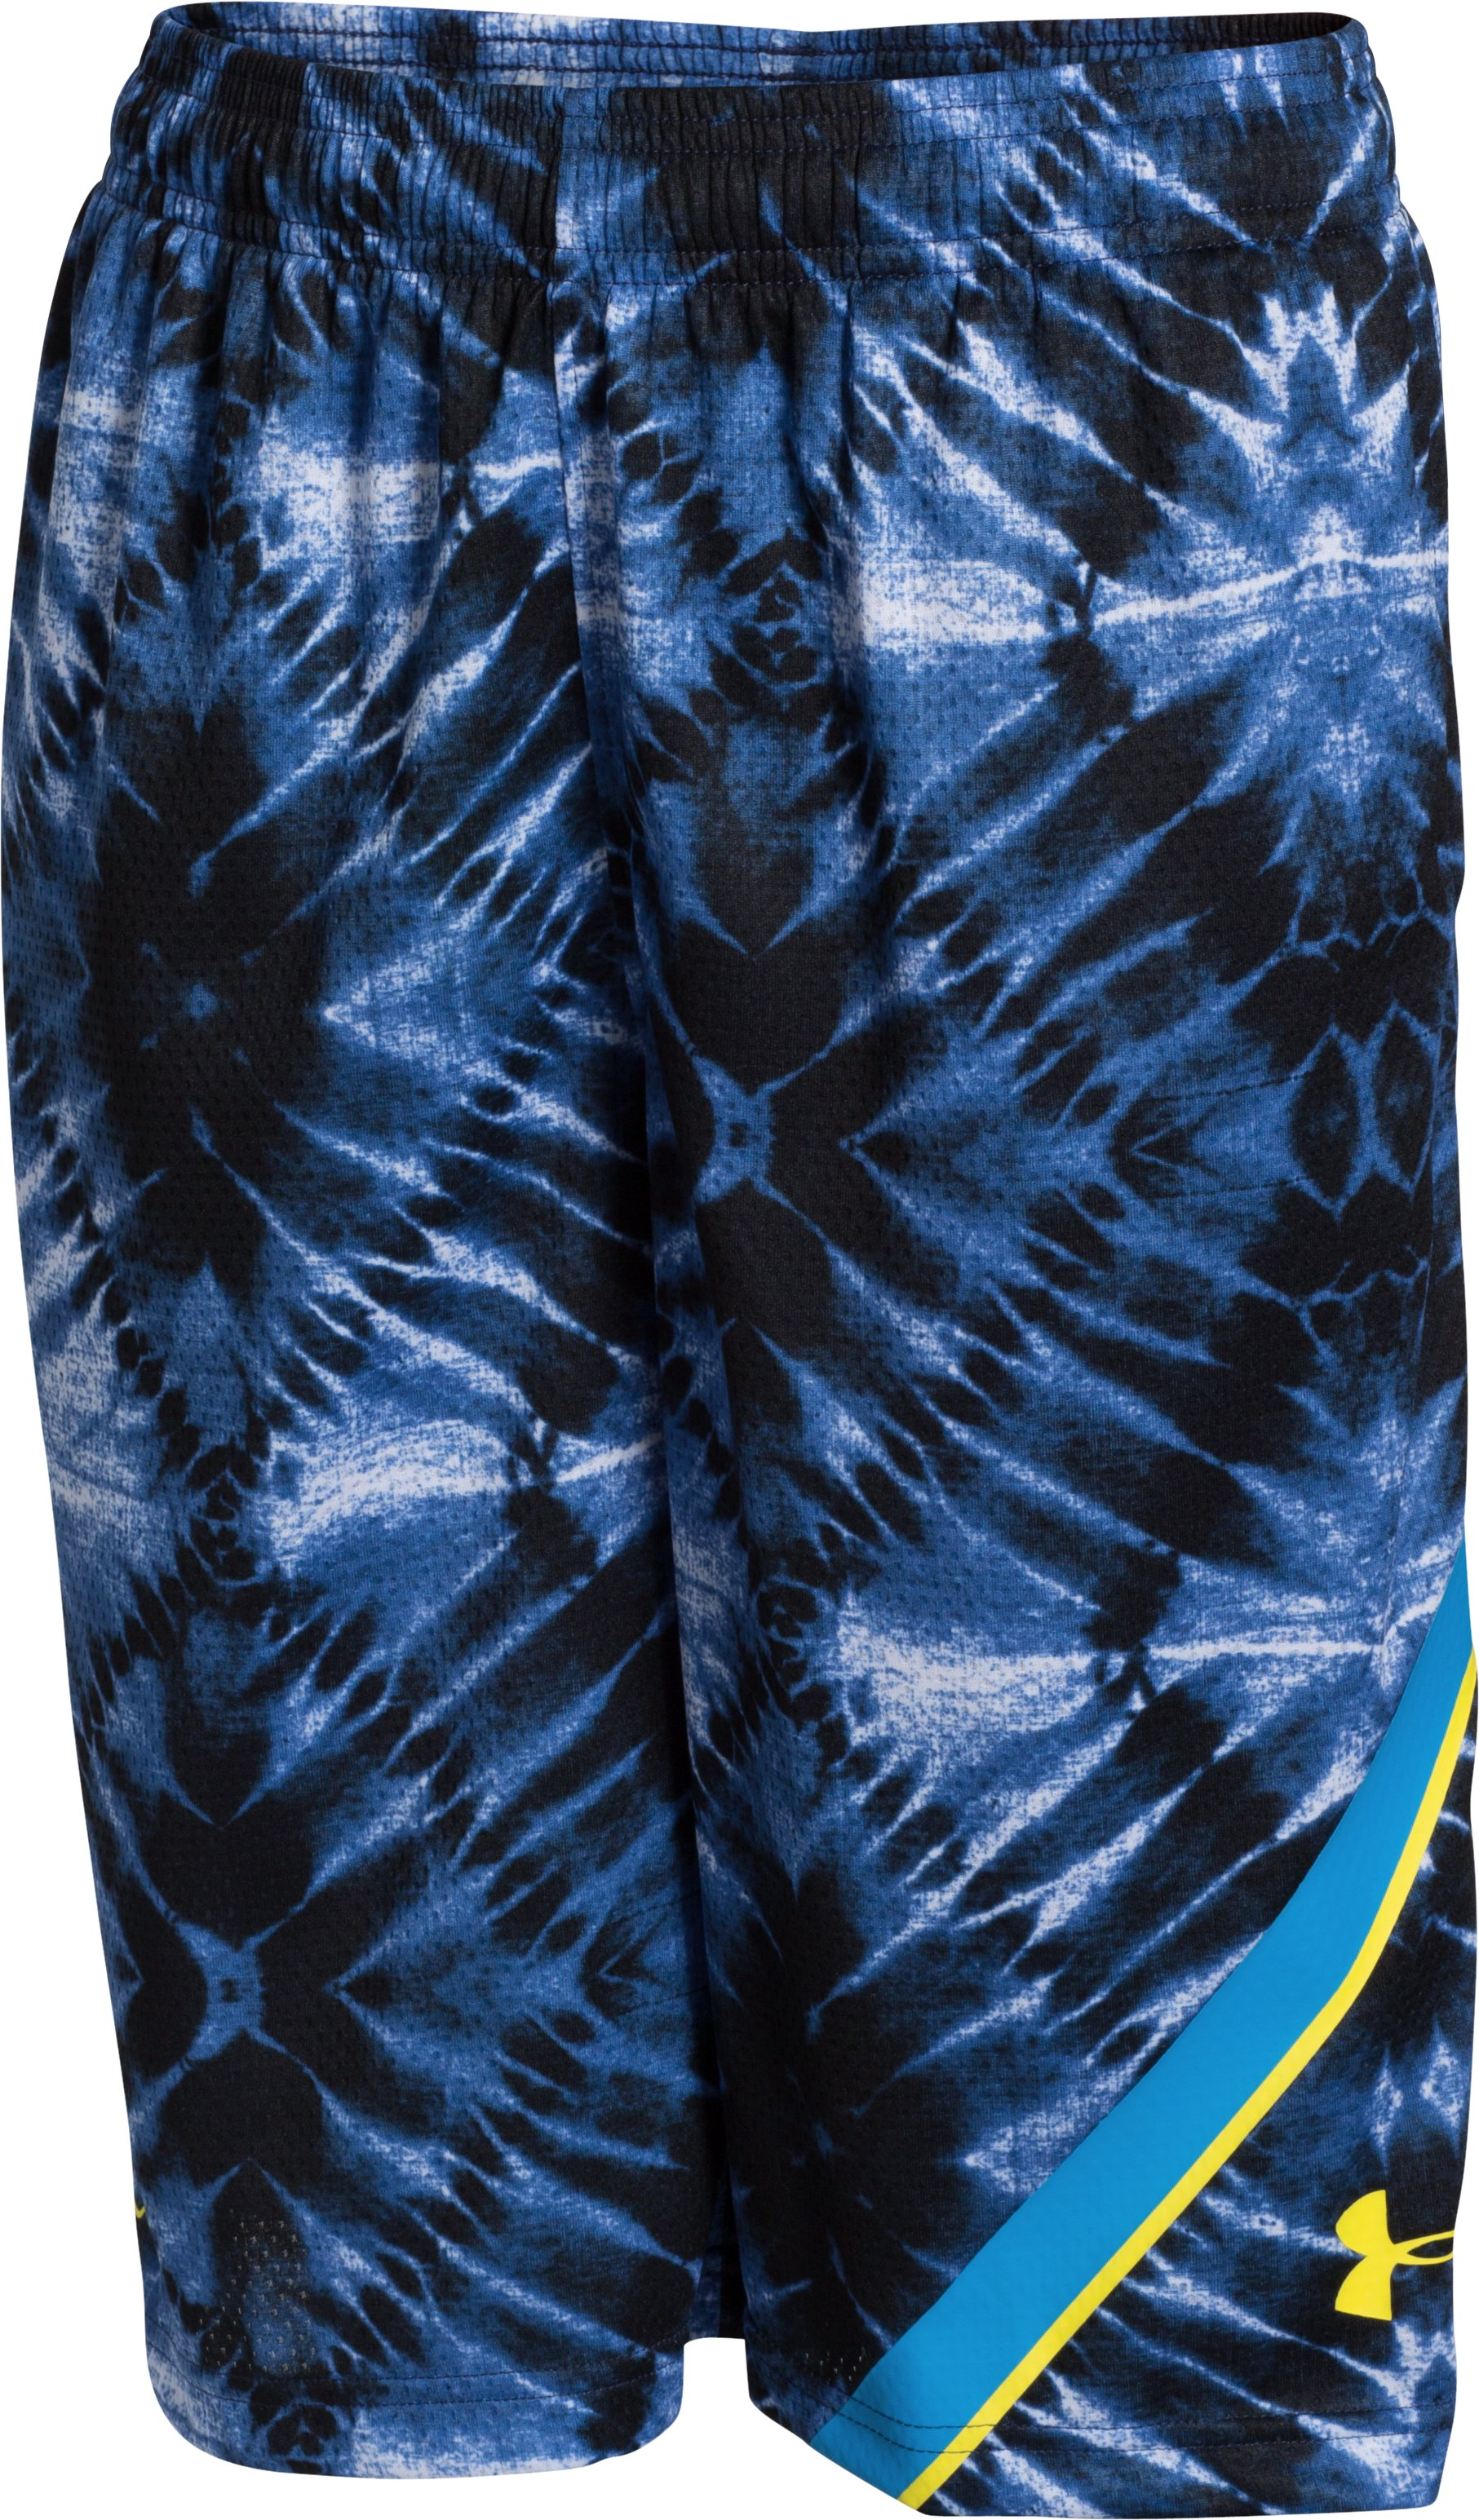 Boys' SC30 Essentials Printed Basketball Shorts, Royal